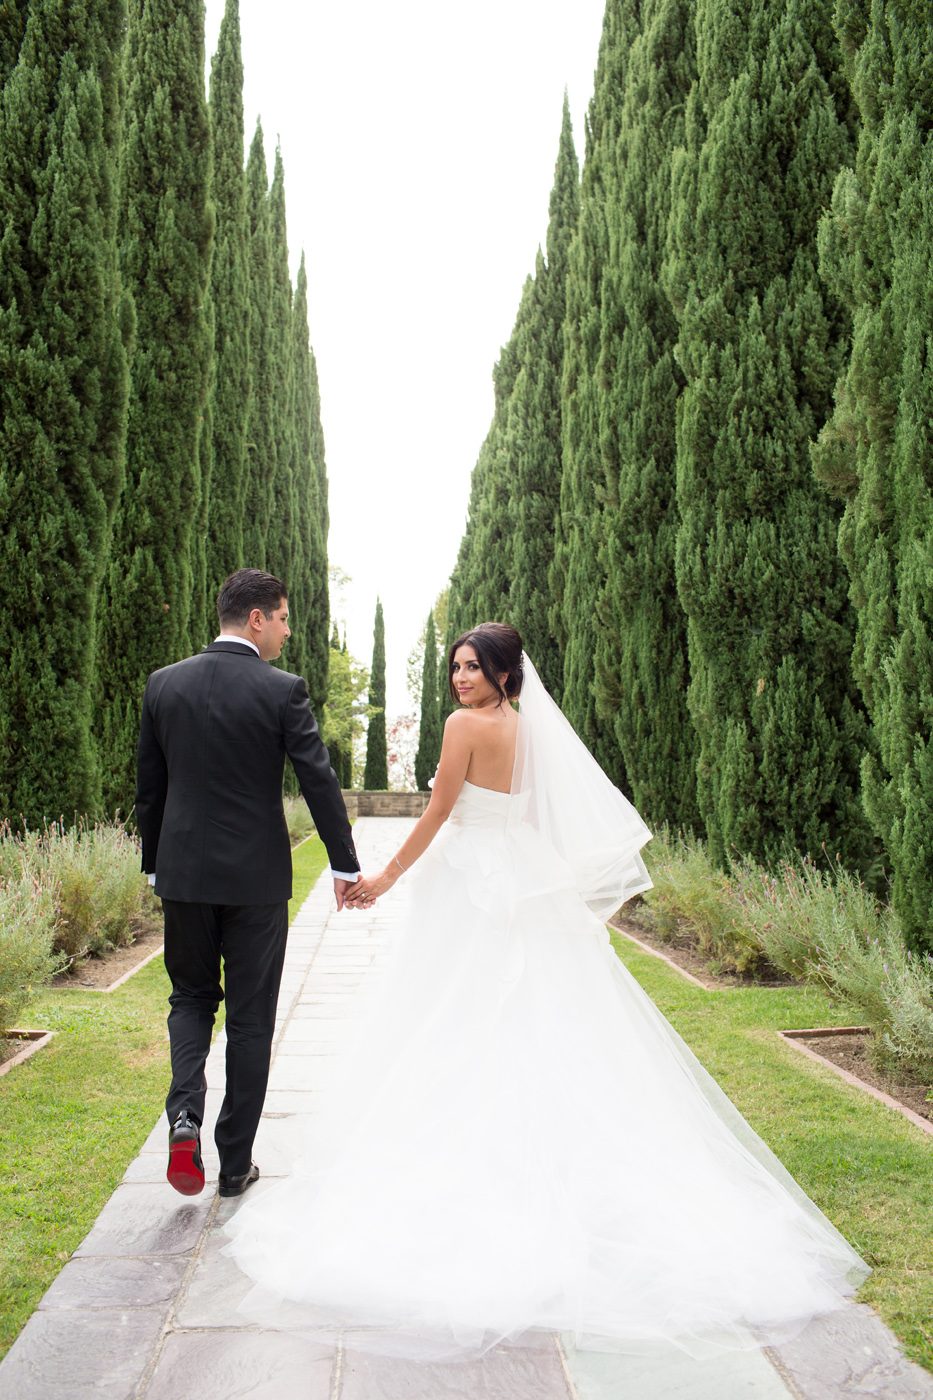 019DukePhotography_DukeImages_weddings_losangeles.jpg